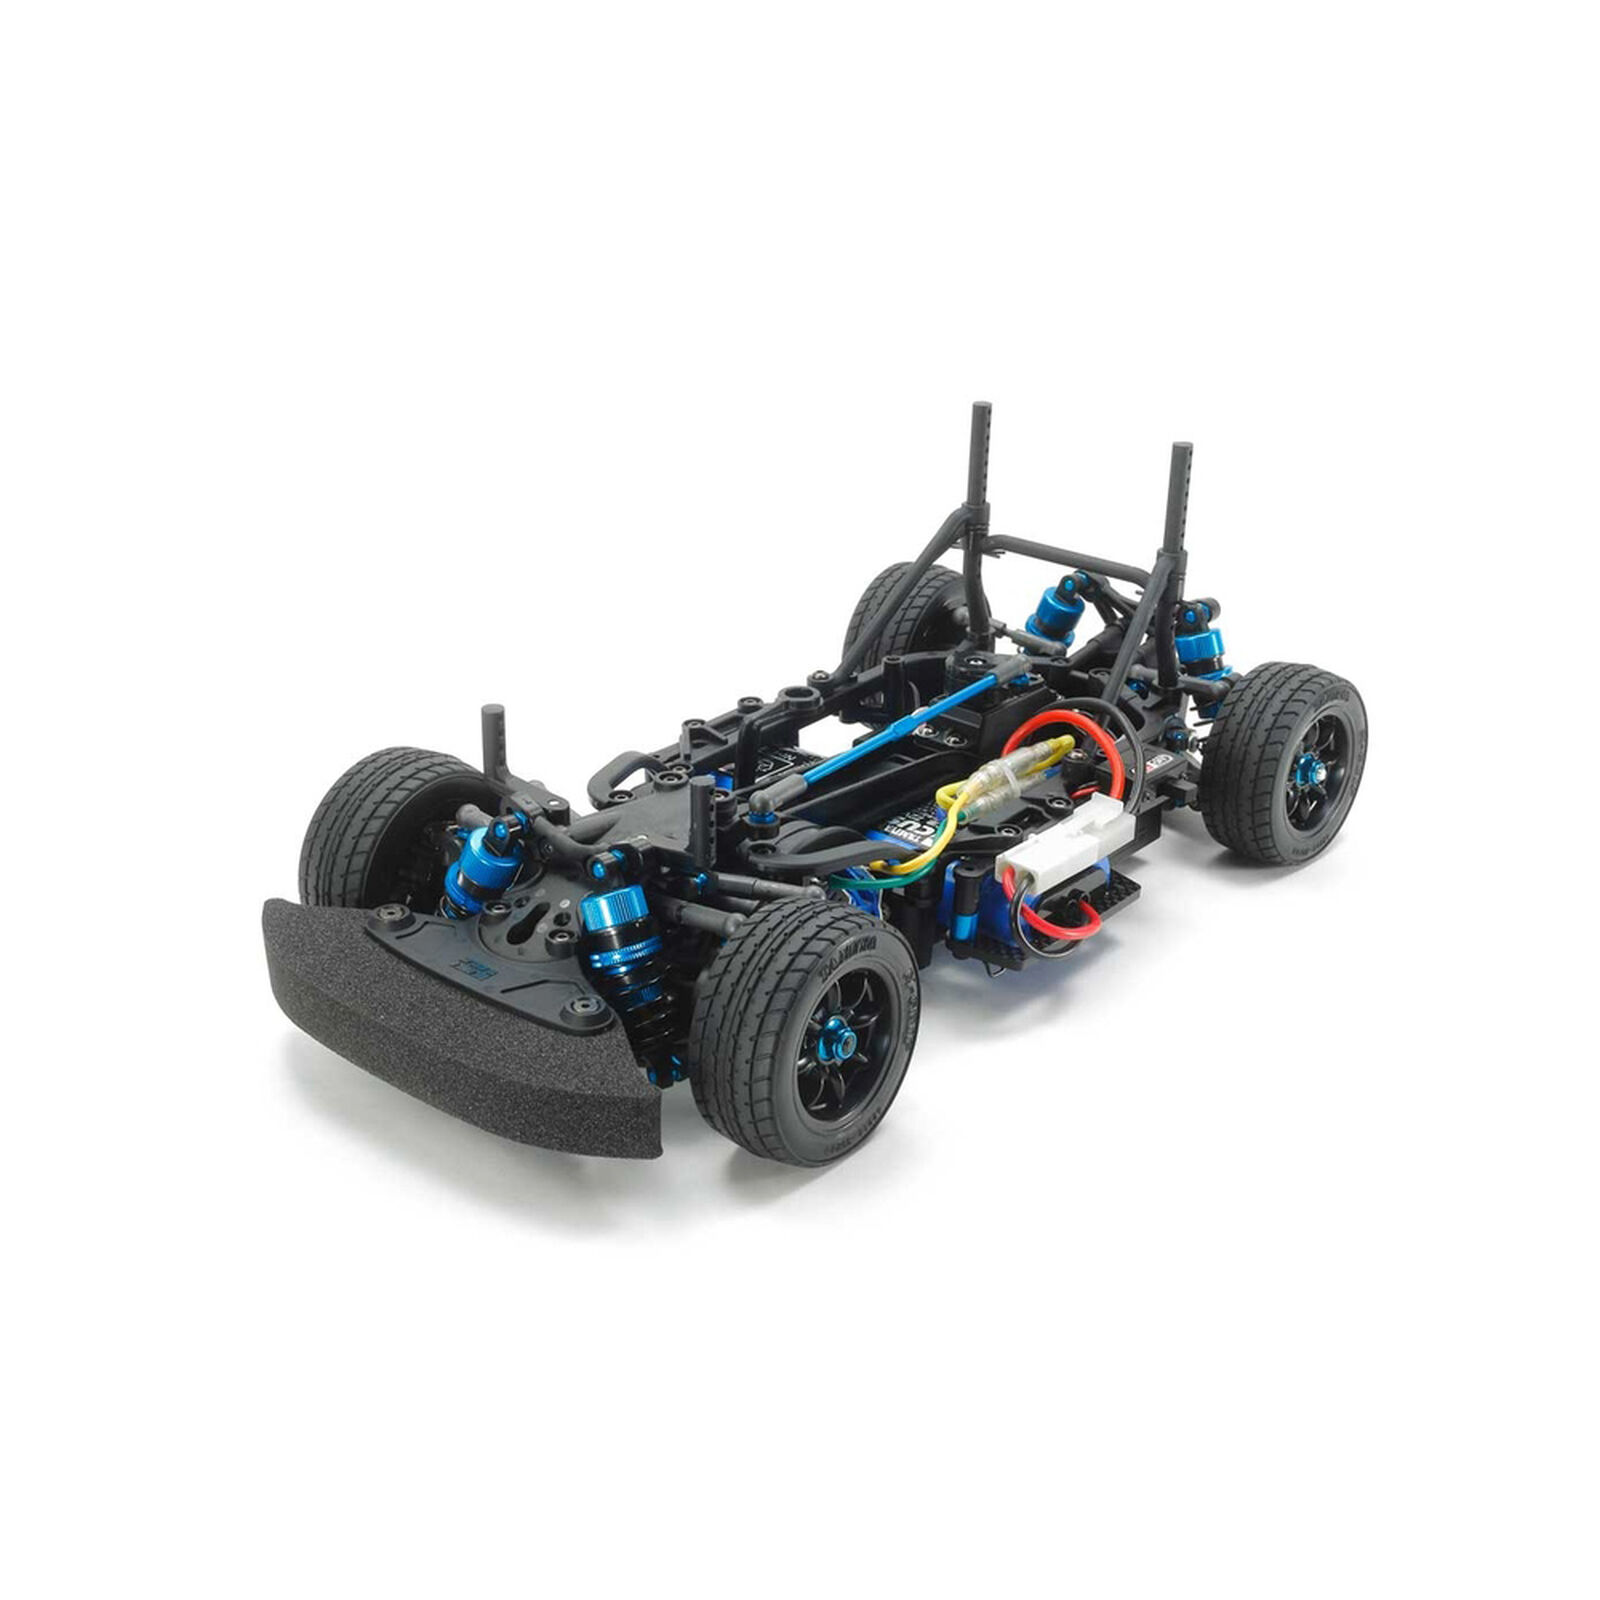 1/10 M-07R 2WD Chassis Kit Limited Edition